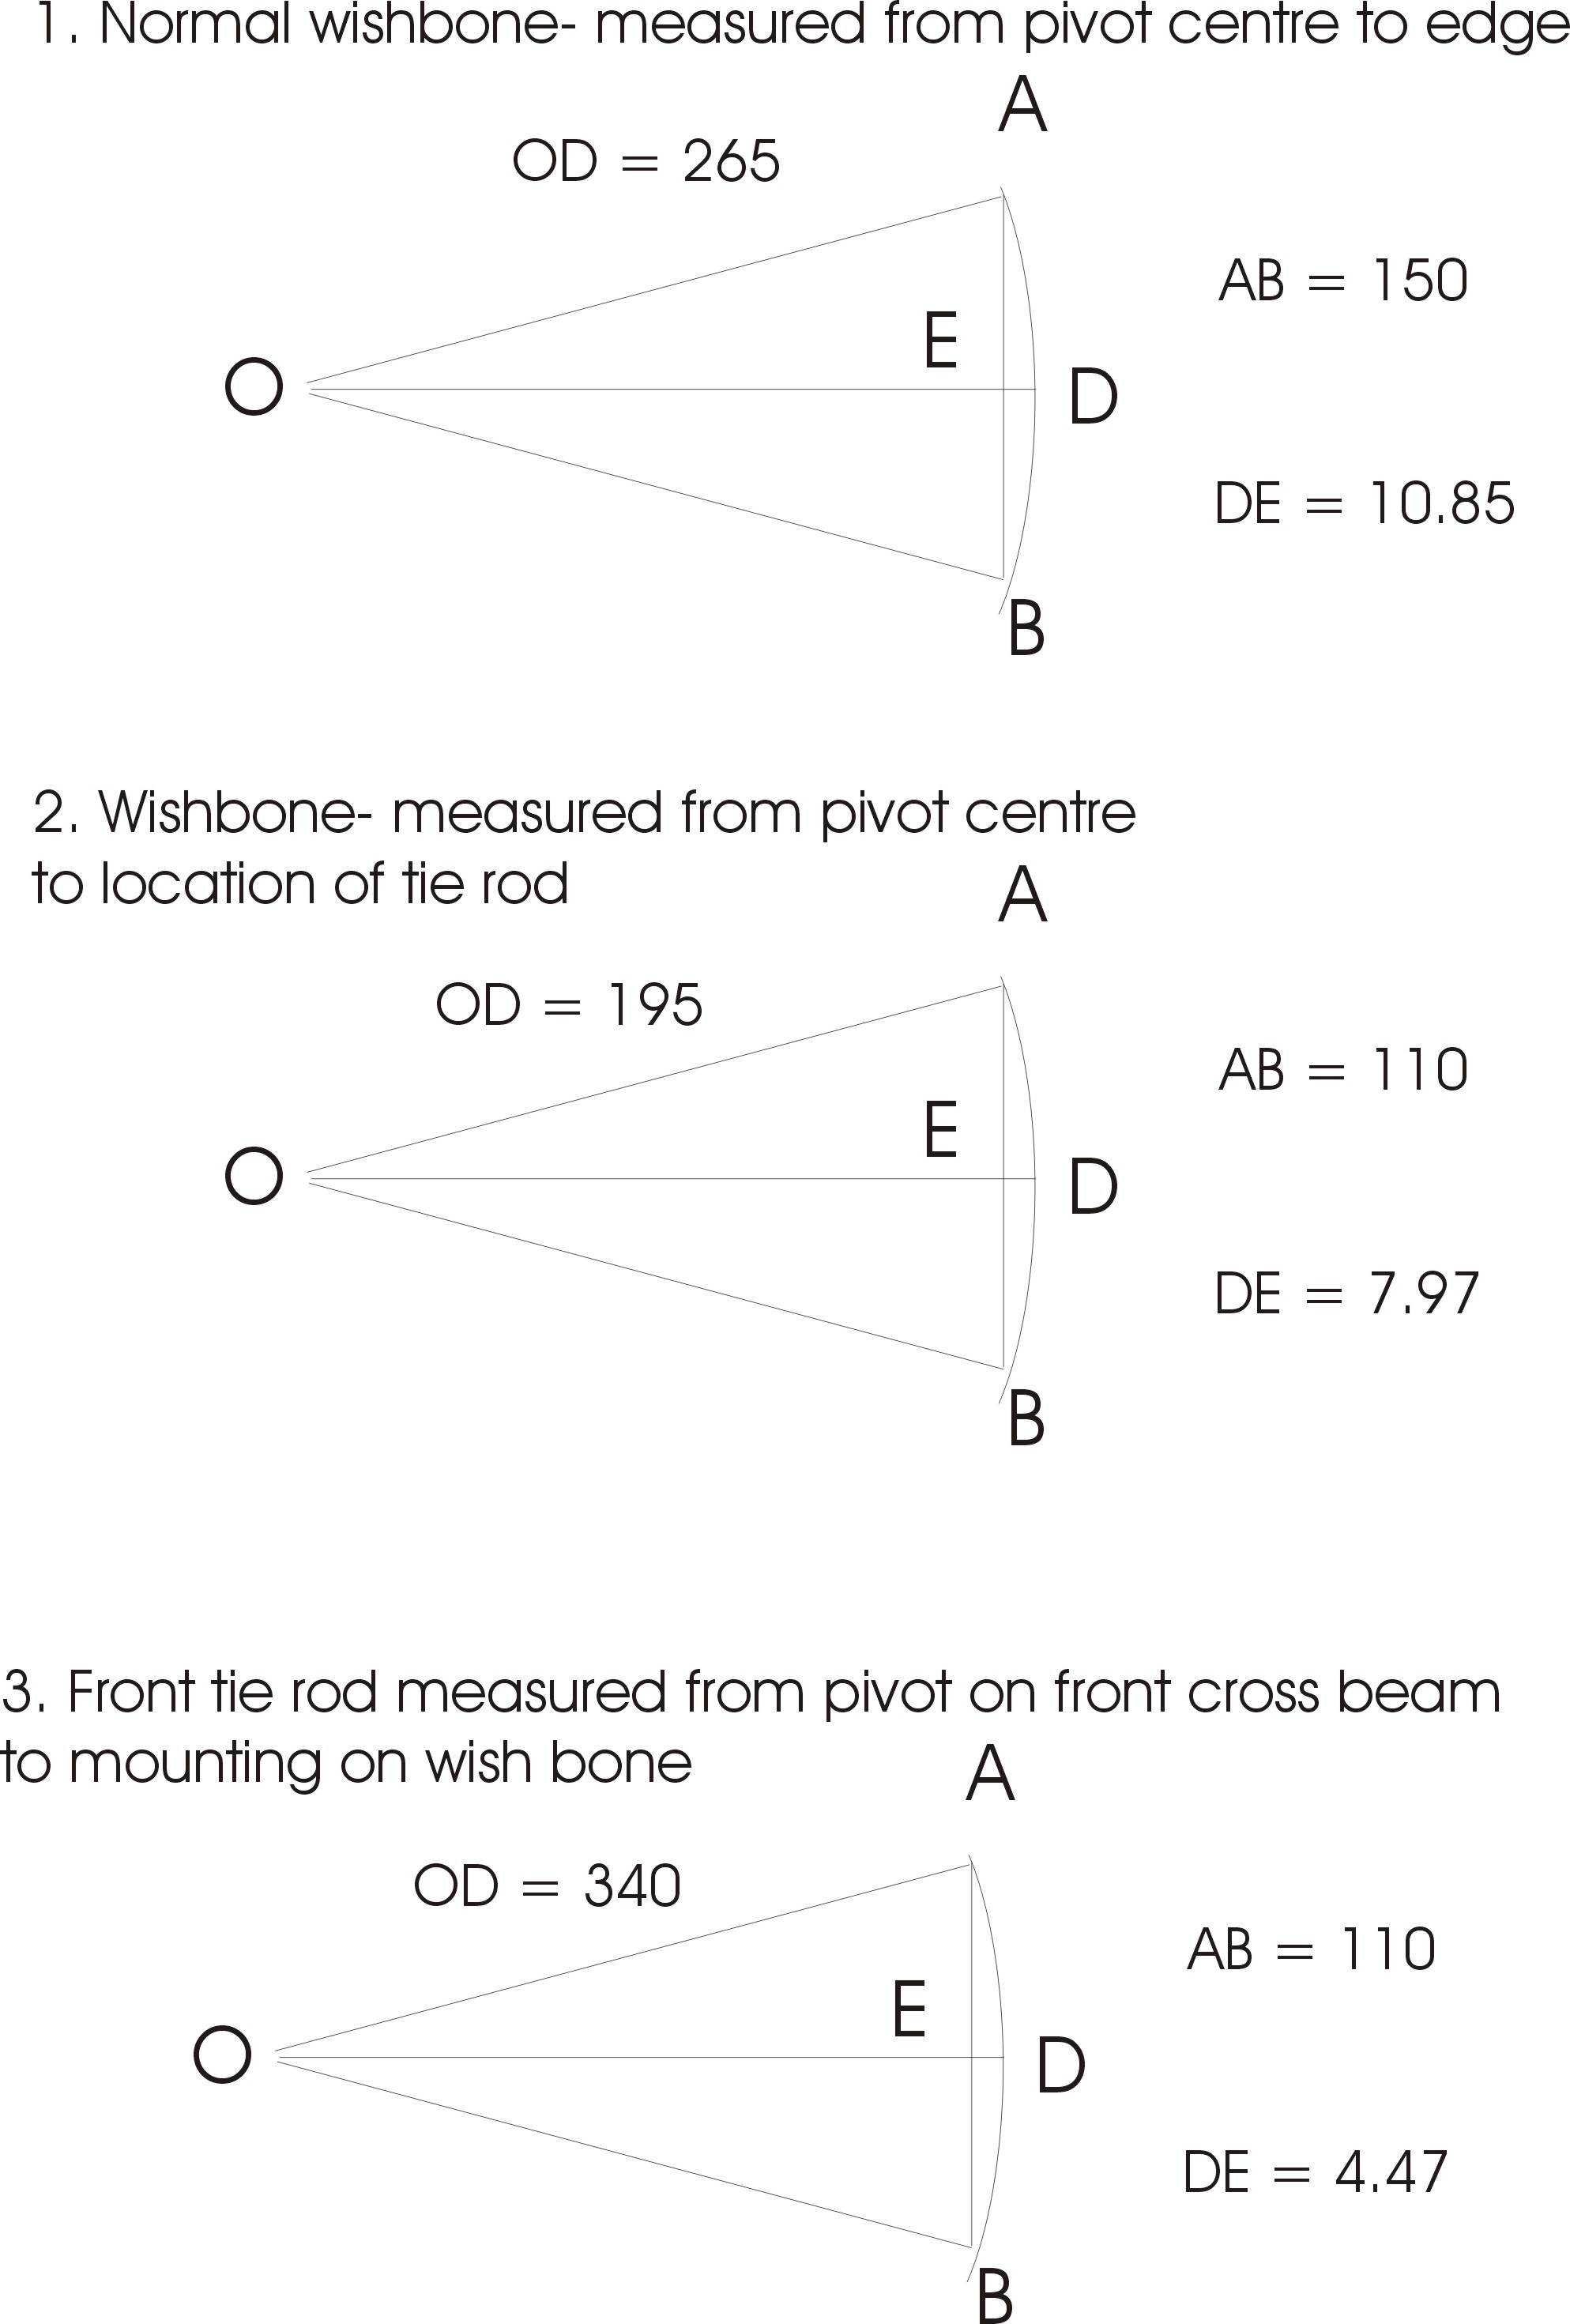 wishbone measurements and calcs.jpg